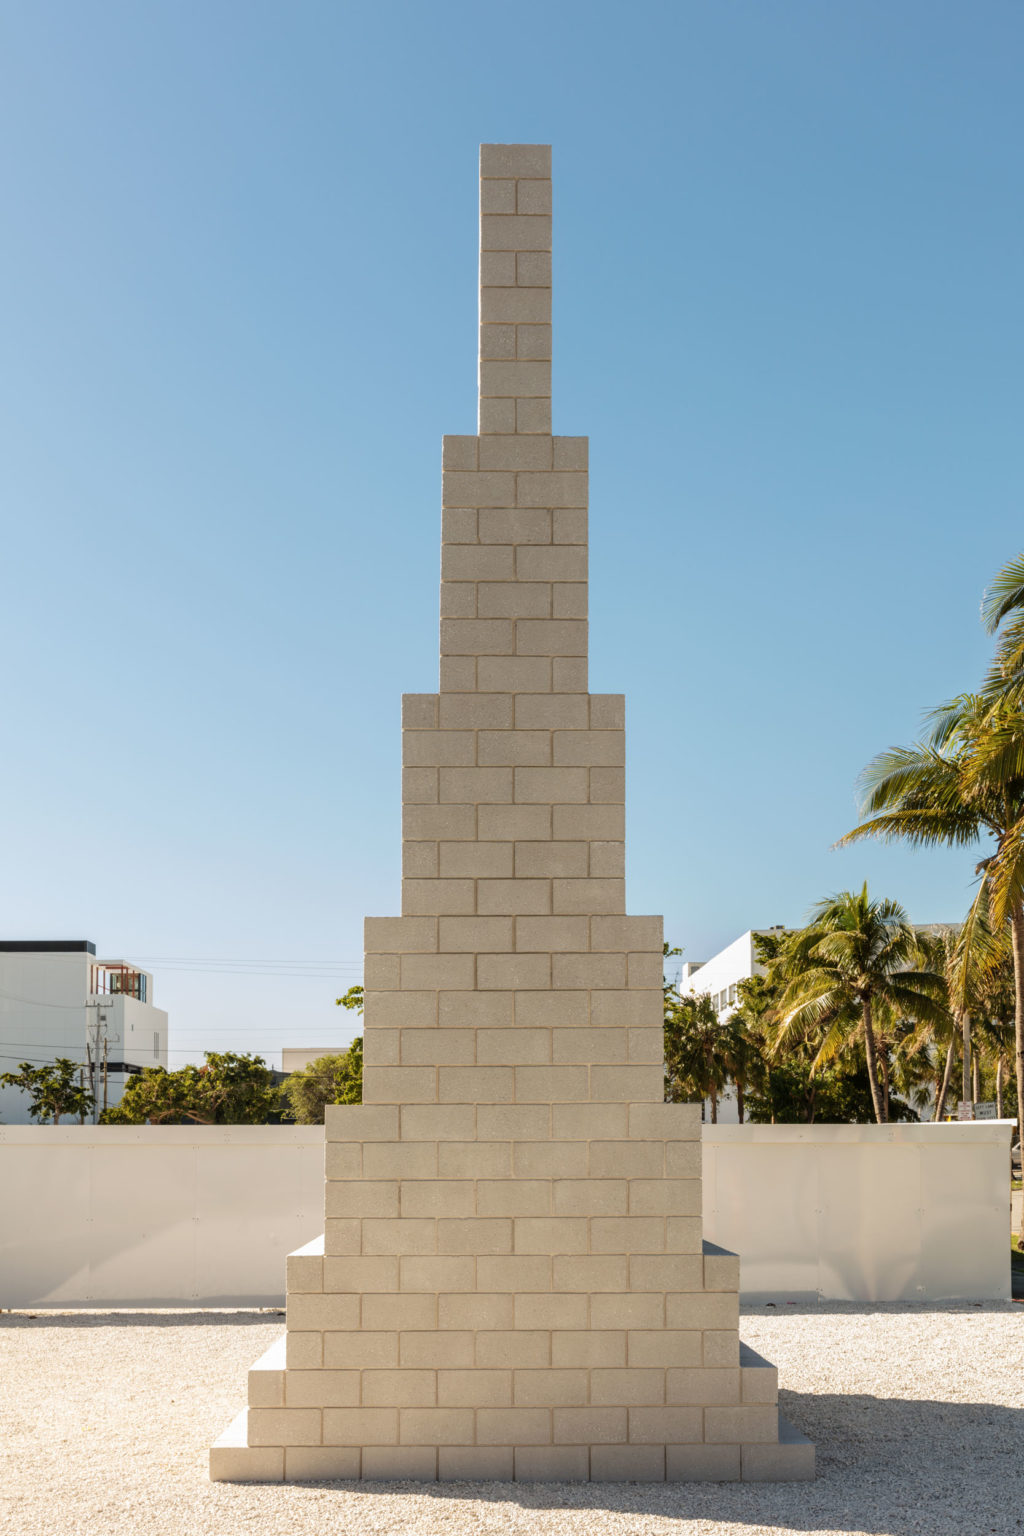 Installation view Sol LeWitt, Tower (Lodz), 1993 in the Miami Design District